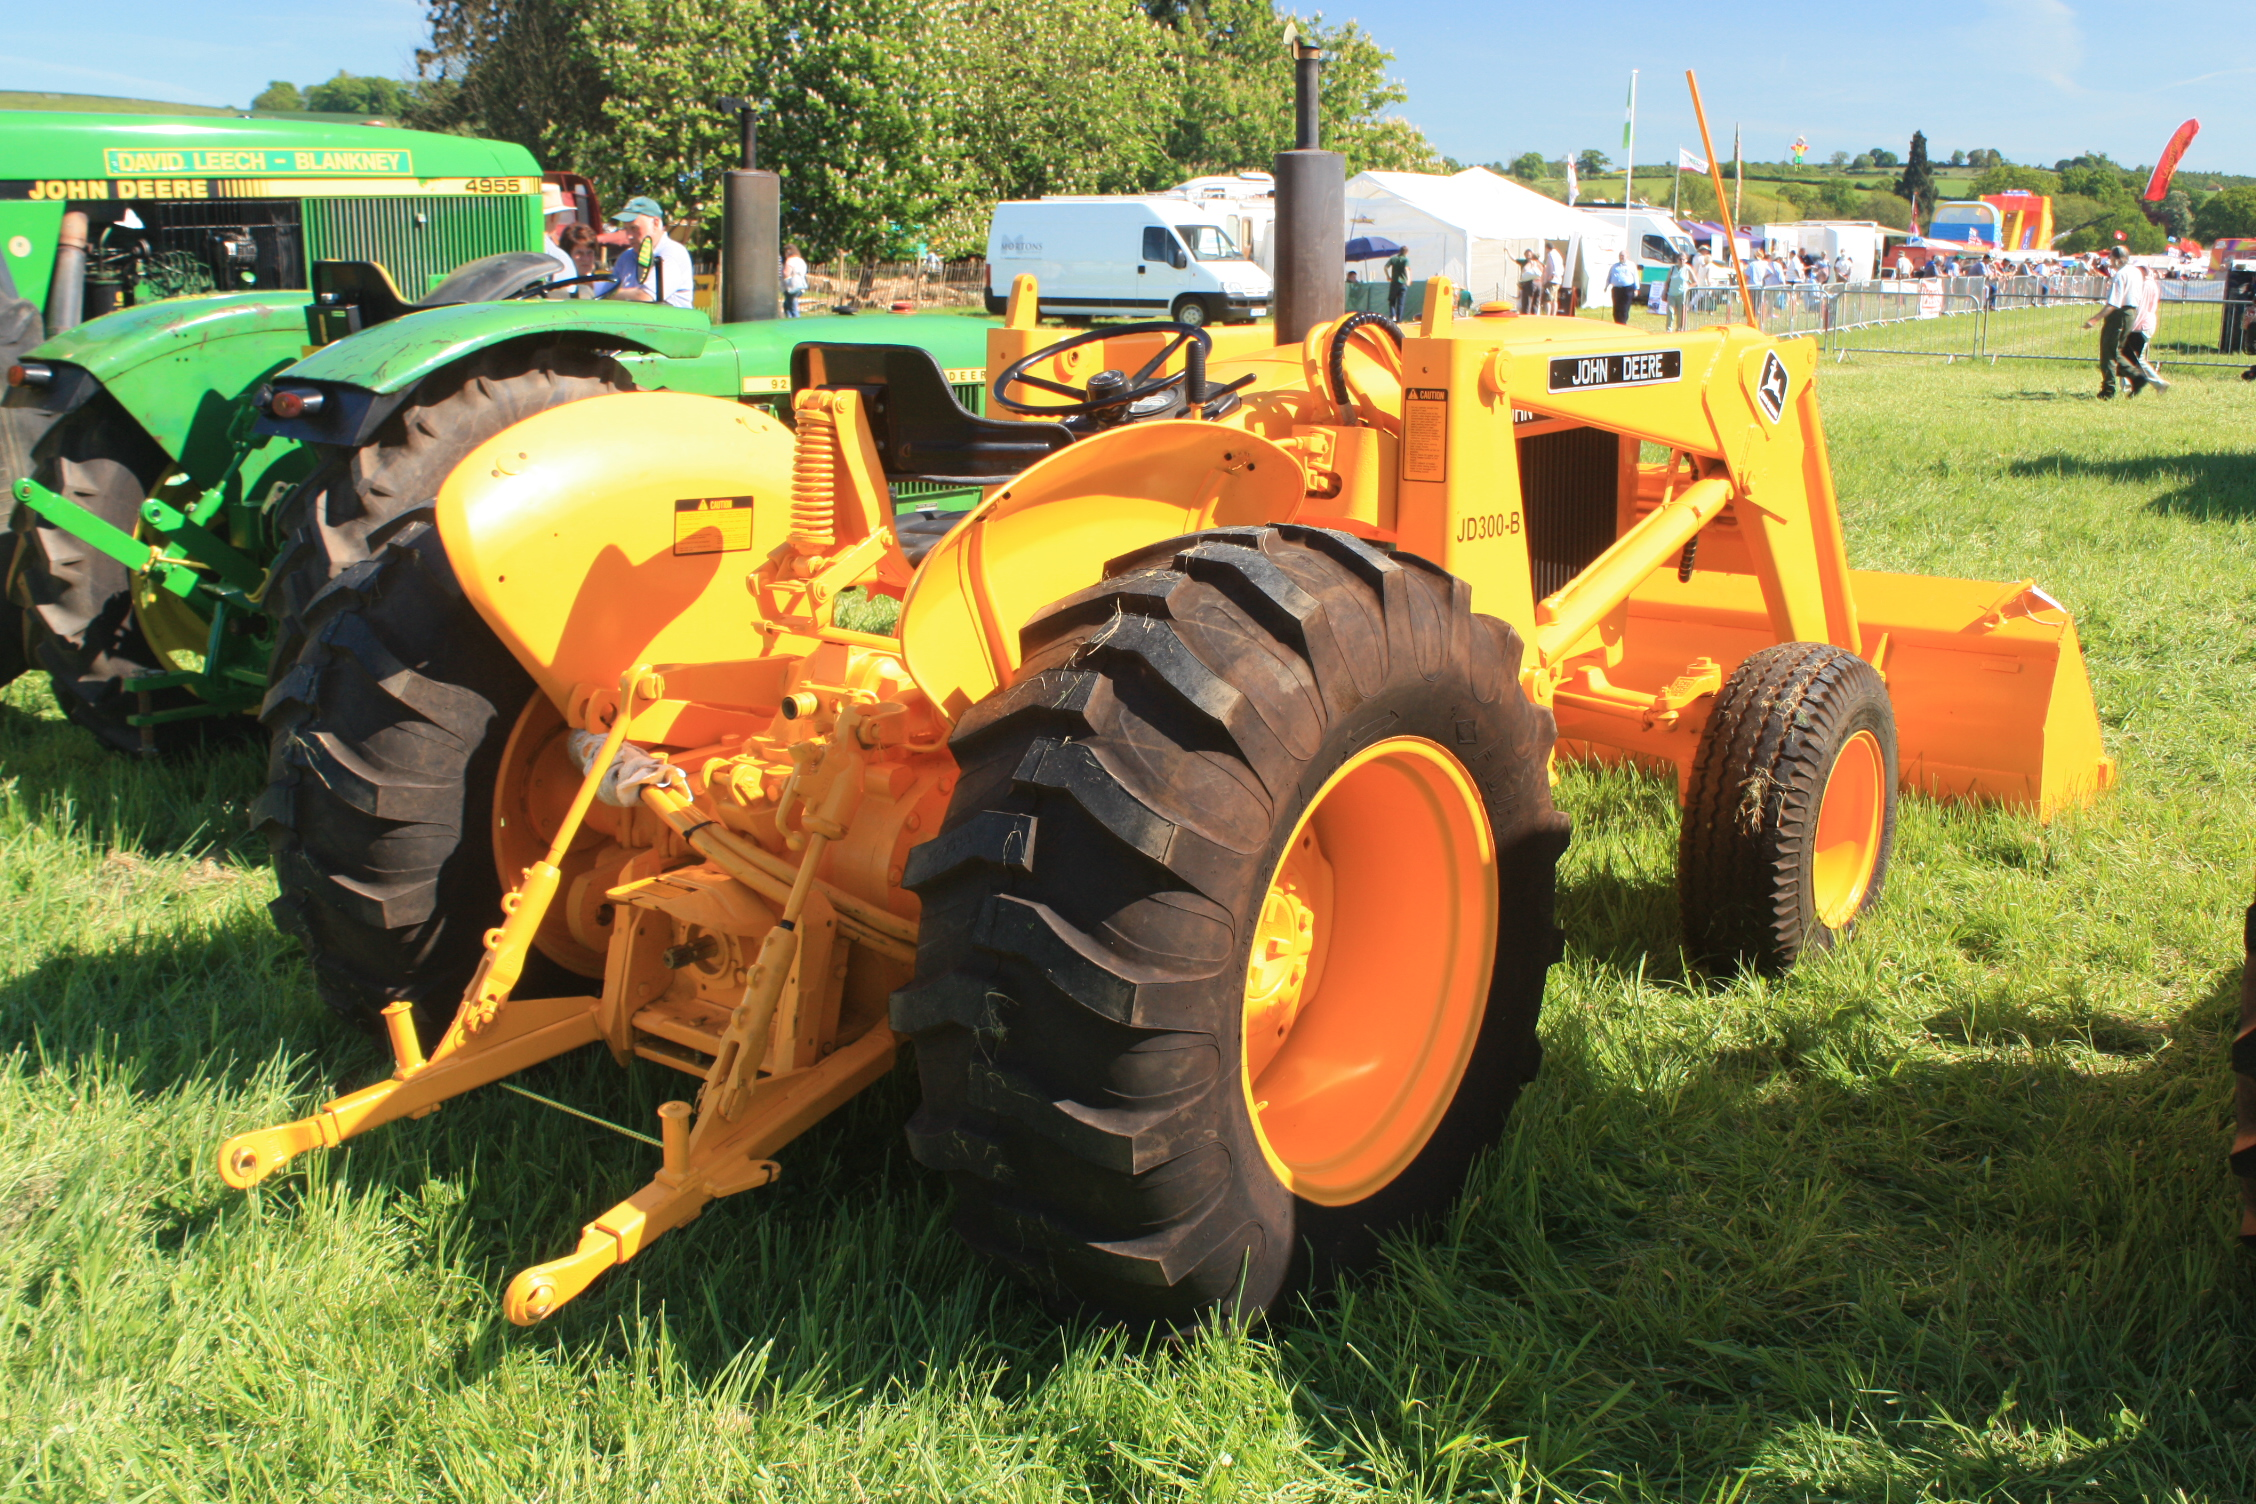 Jd 2010 Industrial Tractor : Top john deere industrial tractor images for pinterest